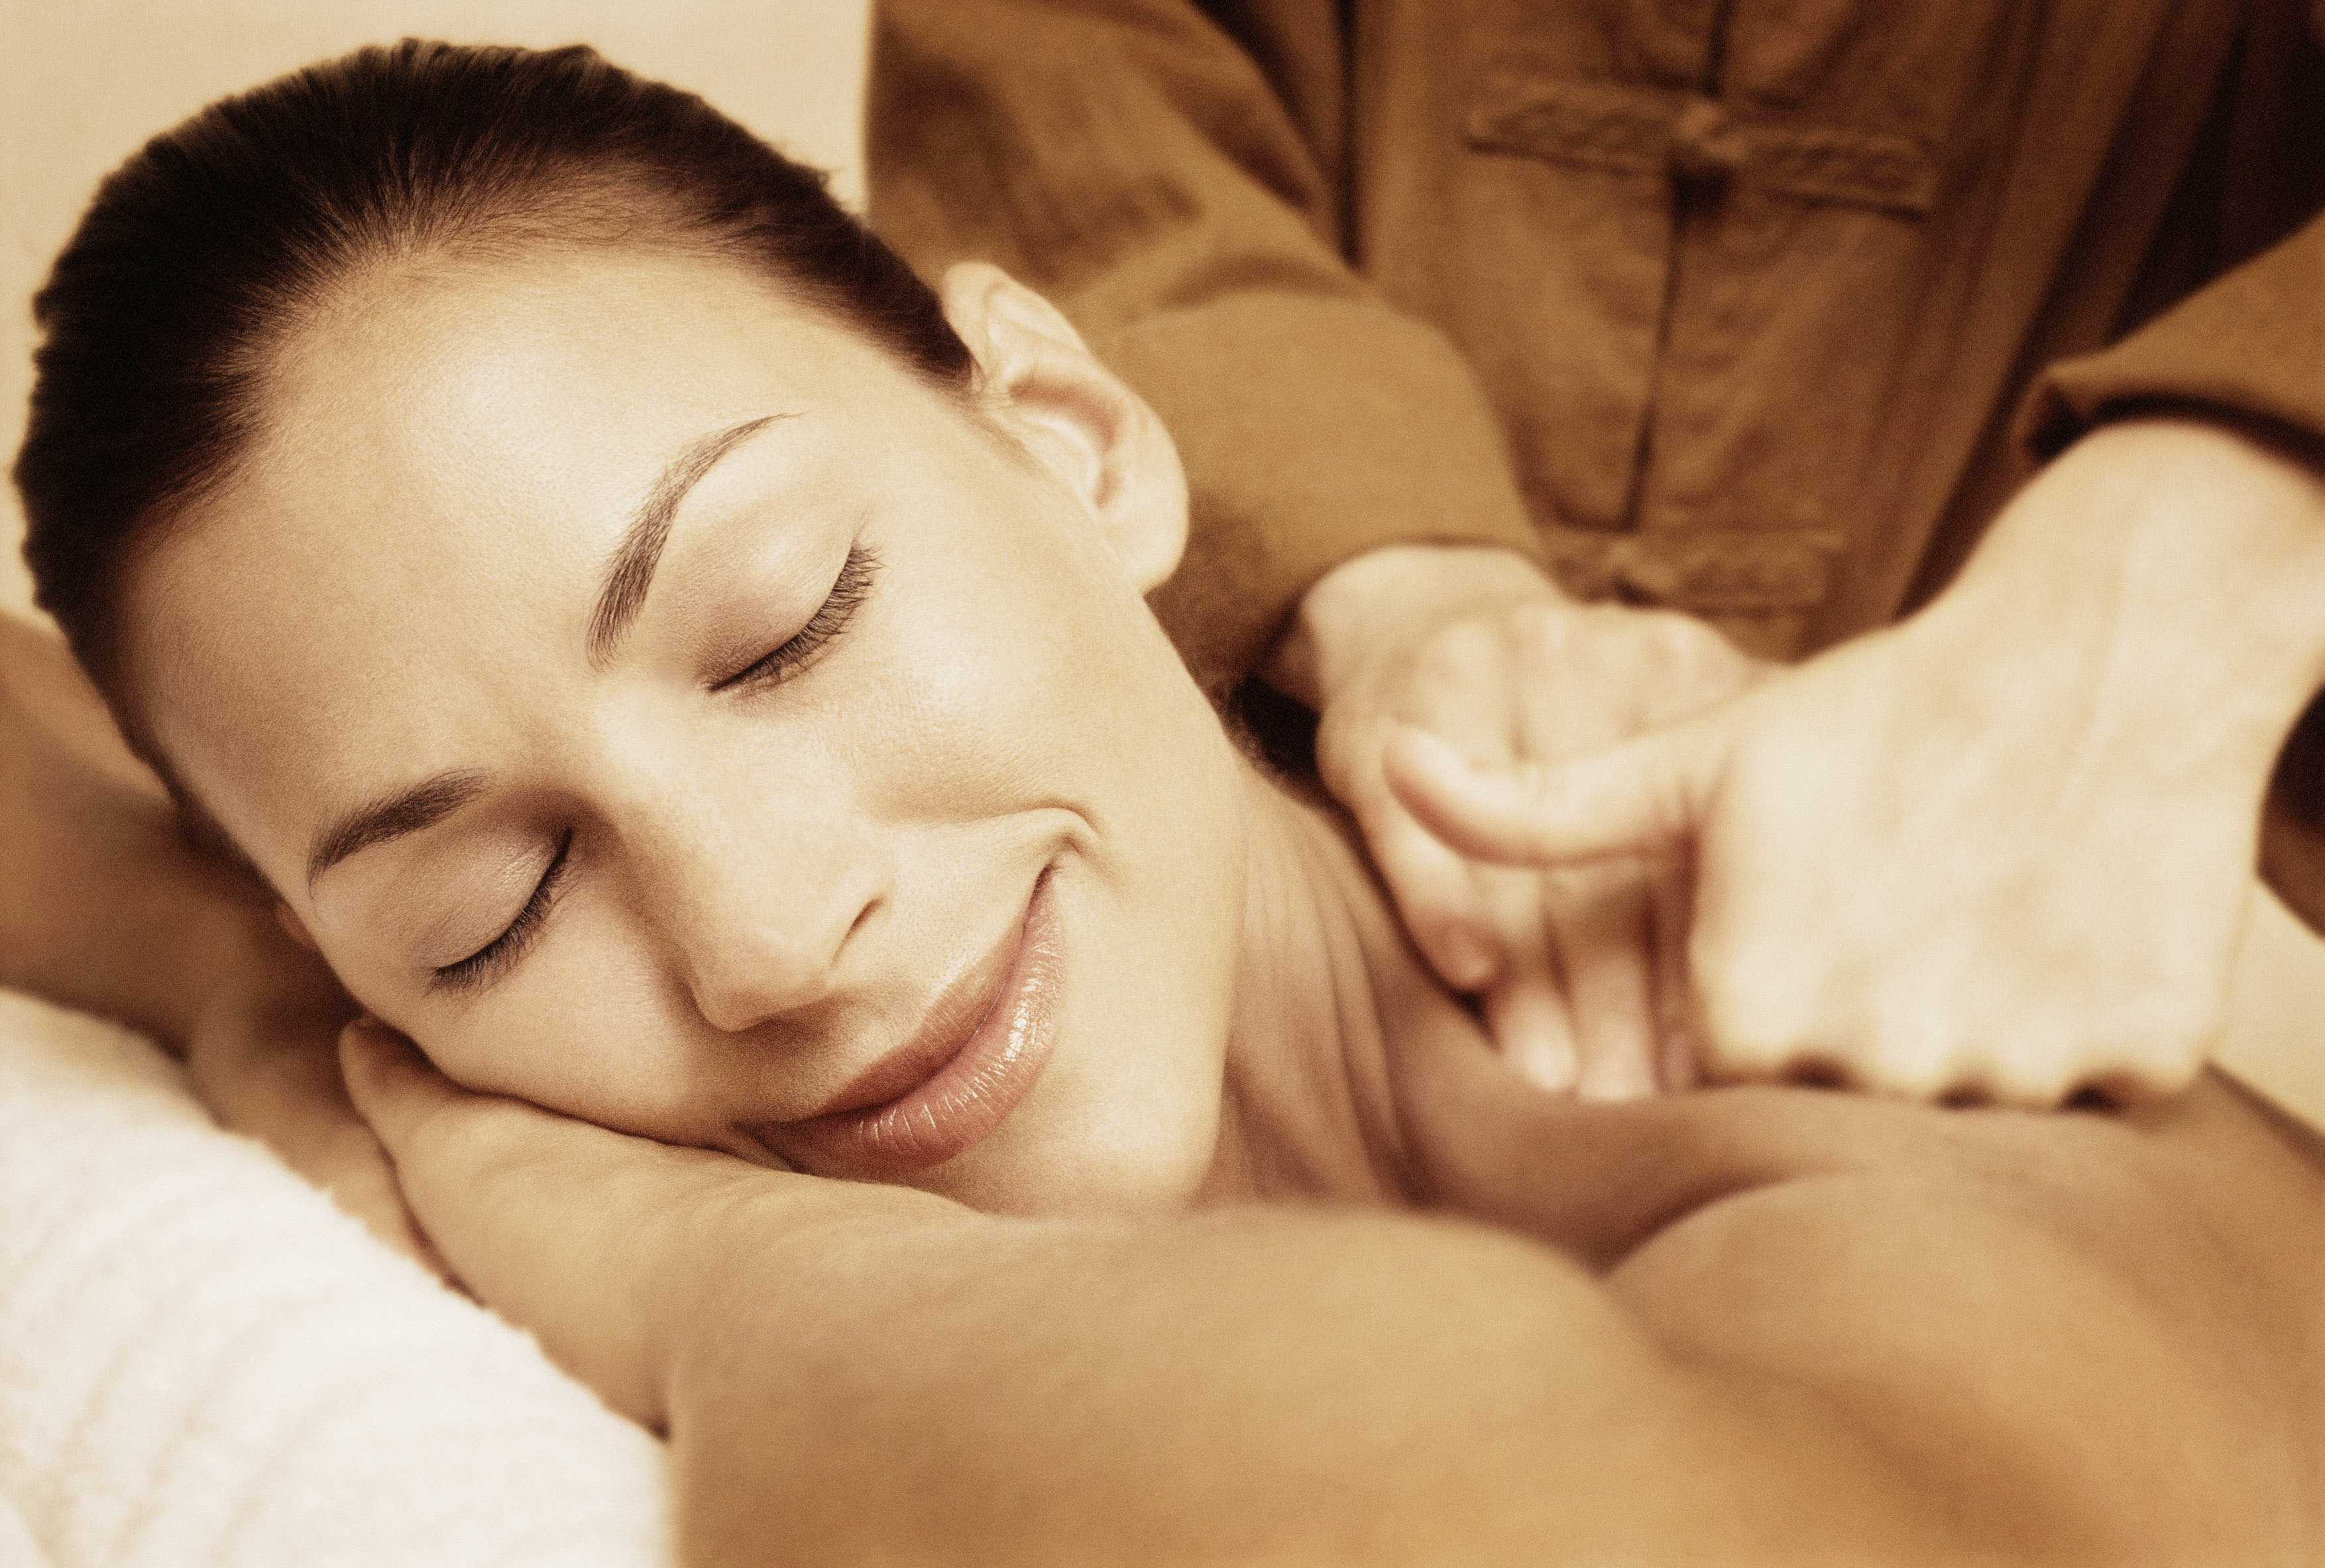 Massage maintains physical health and well-being and induces ...